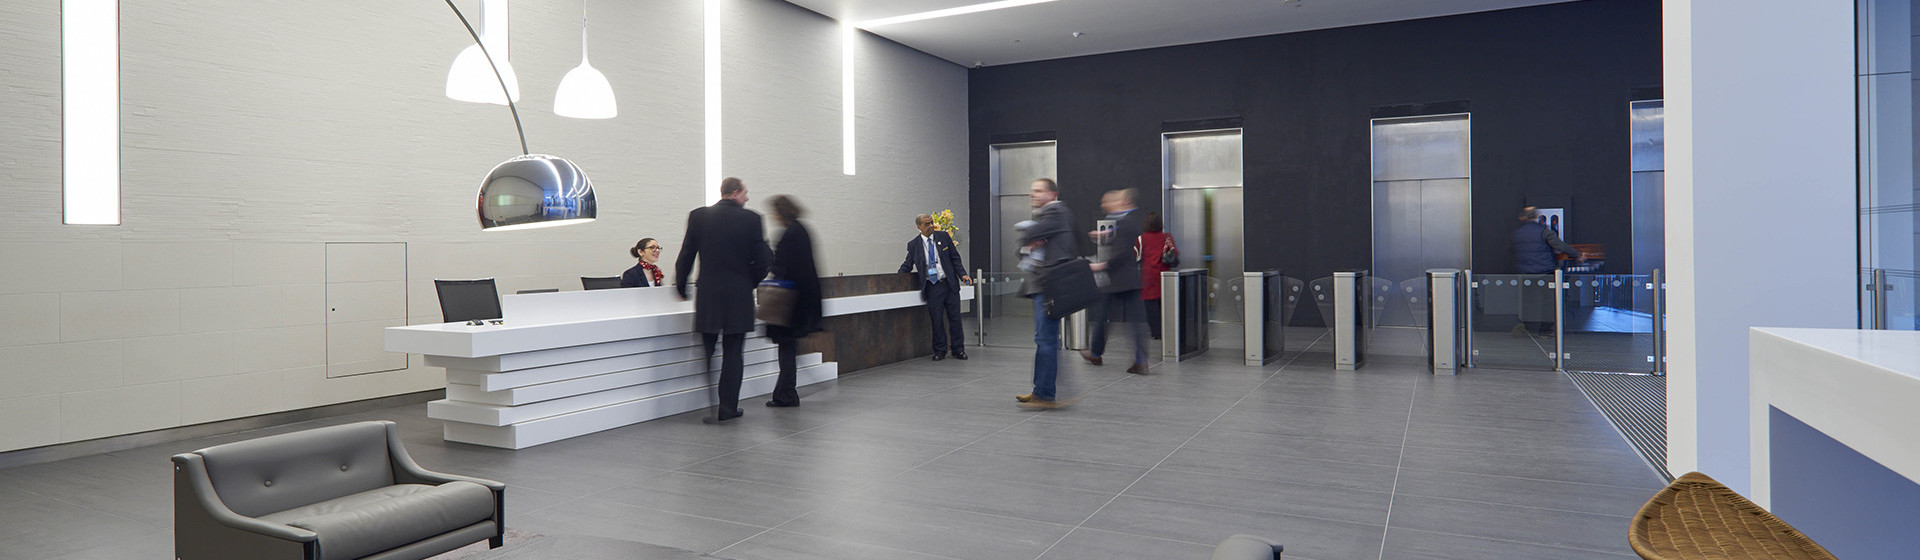 Image for 10 Fleet Place Image 3